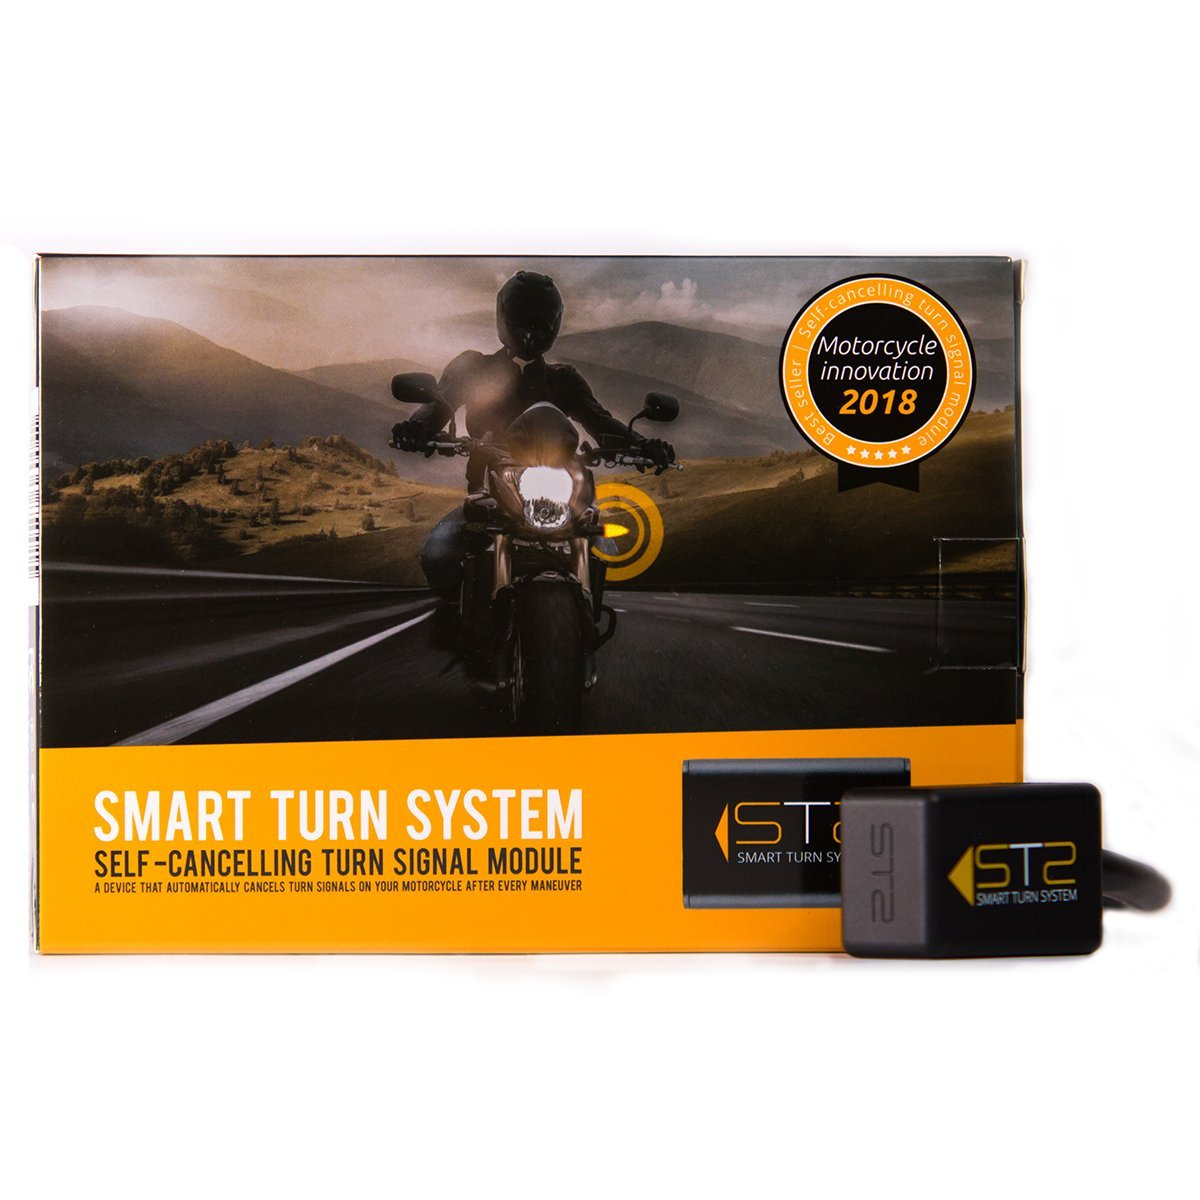 Smart Turn System - STS, automatic turn signal cancelling module, self cancelling system by Smart Turn System